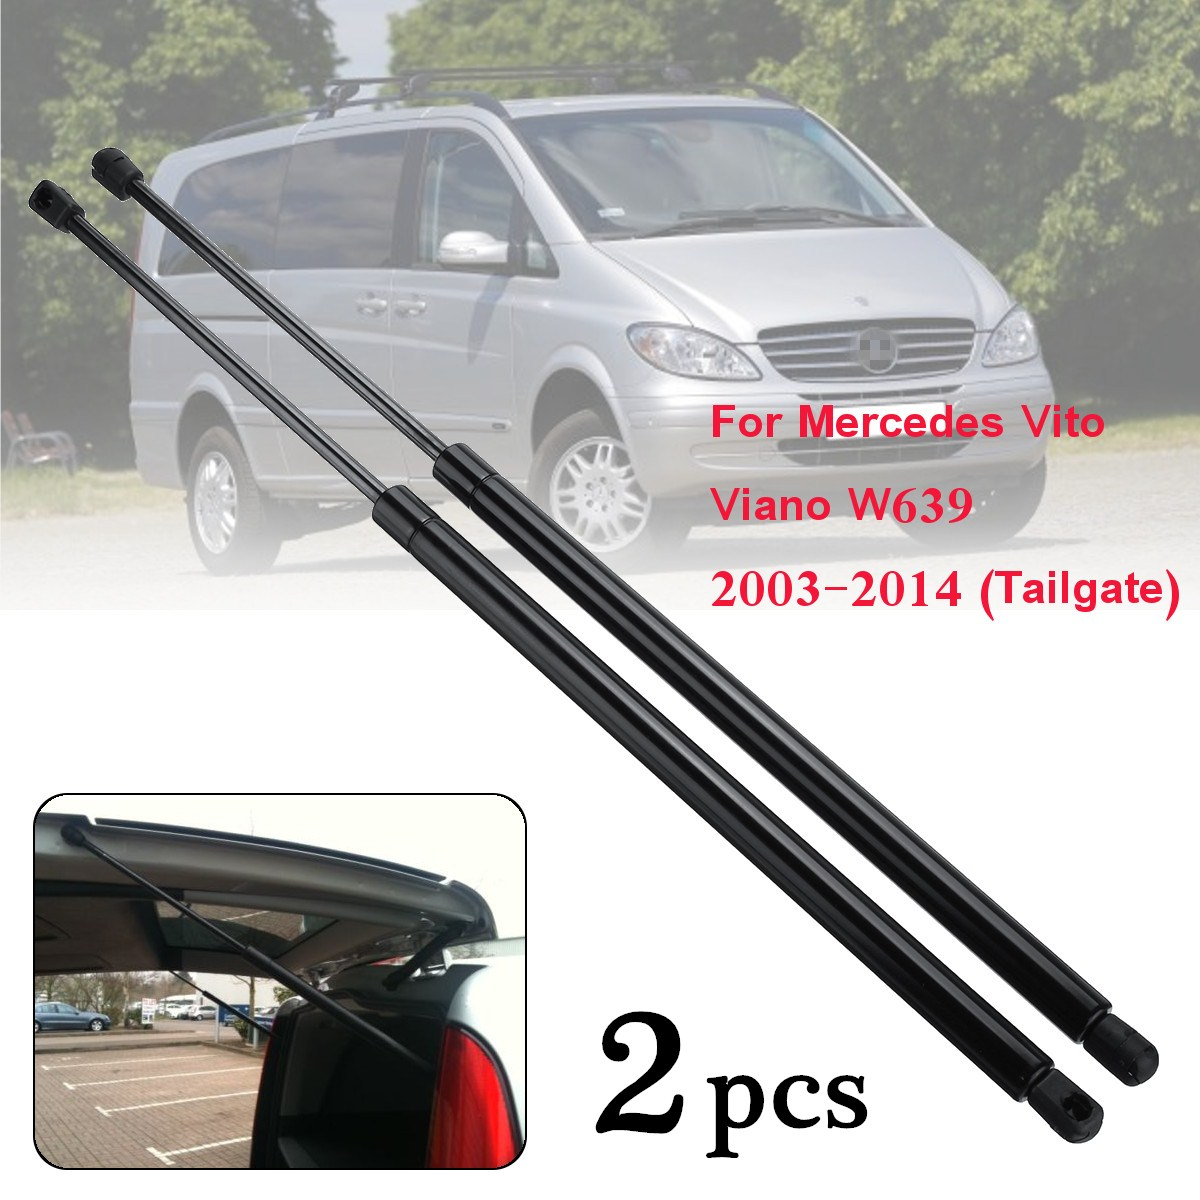 2pcs Rear Tailgate Boot Gas Struts Support Lifters For Mercedes Vito Viano  W639 2003-2014 6399800164